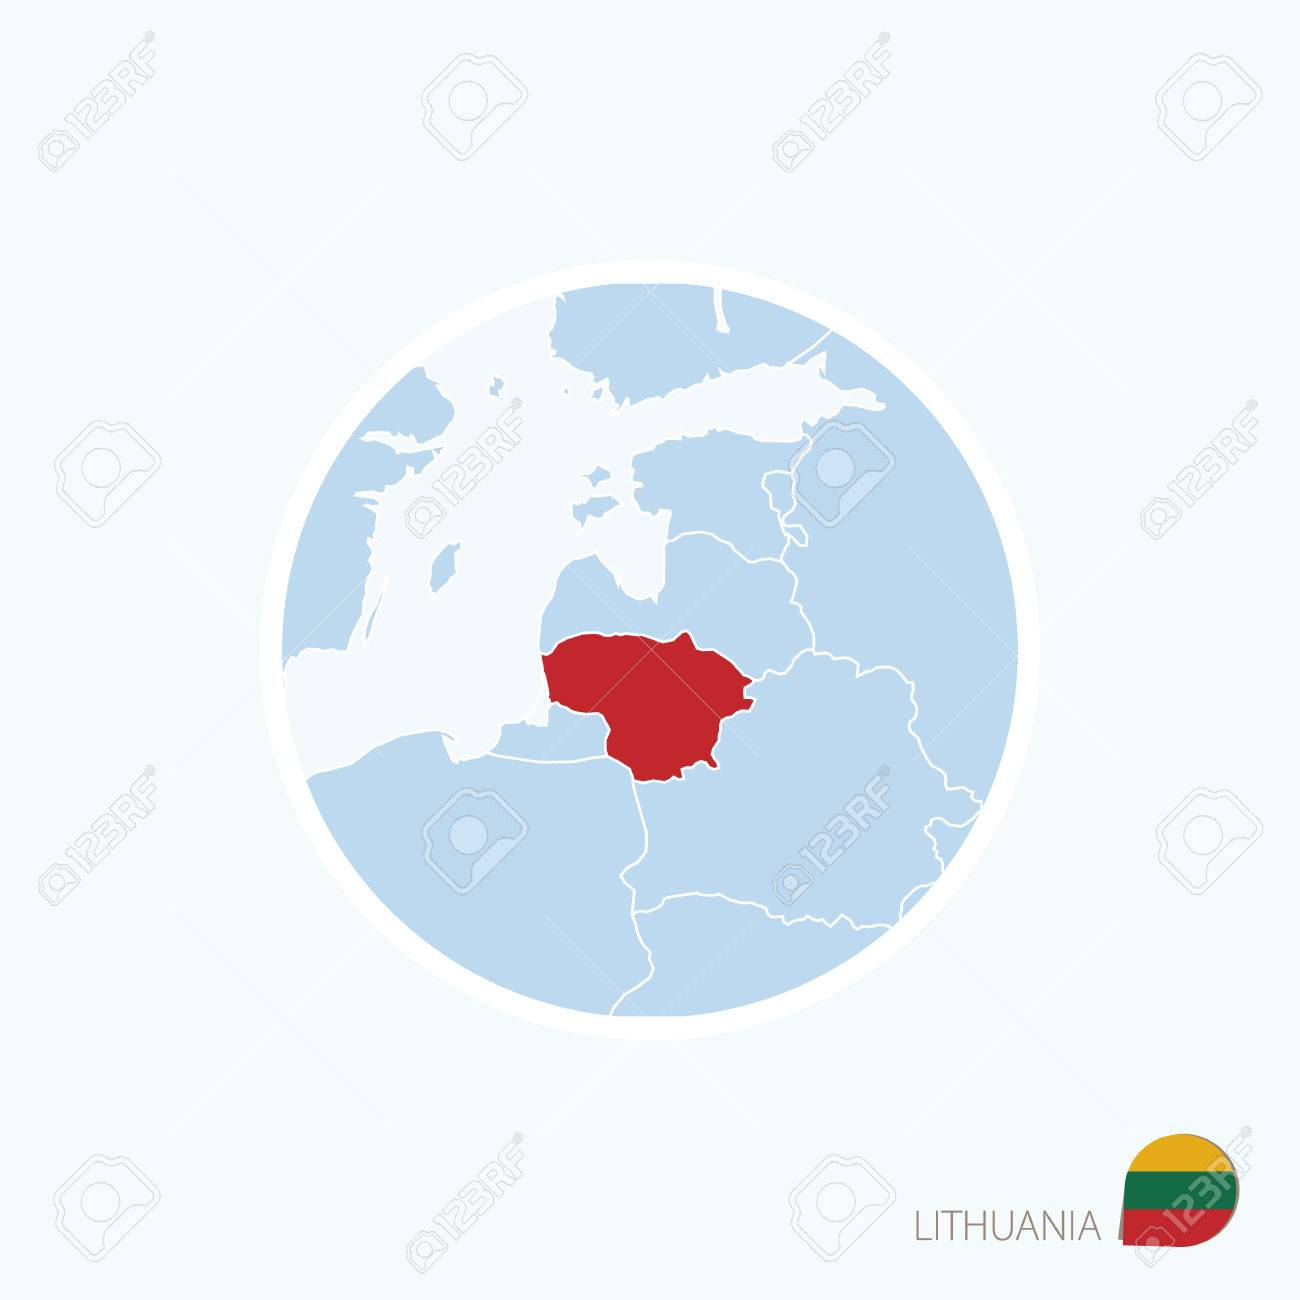 Lithuania On Europe Map.Blue Map Of Europe With Highlighted Lithuania In Red Color Royalty